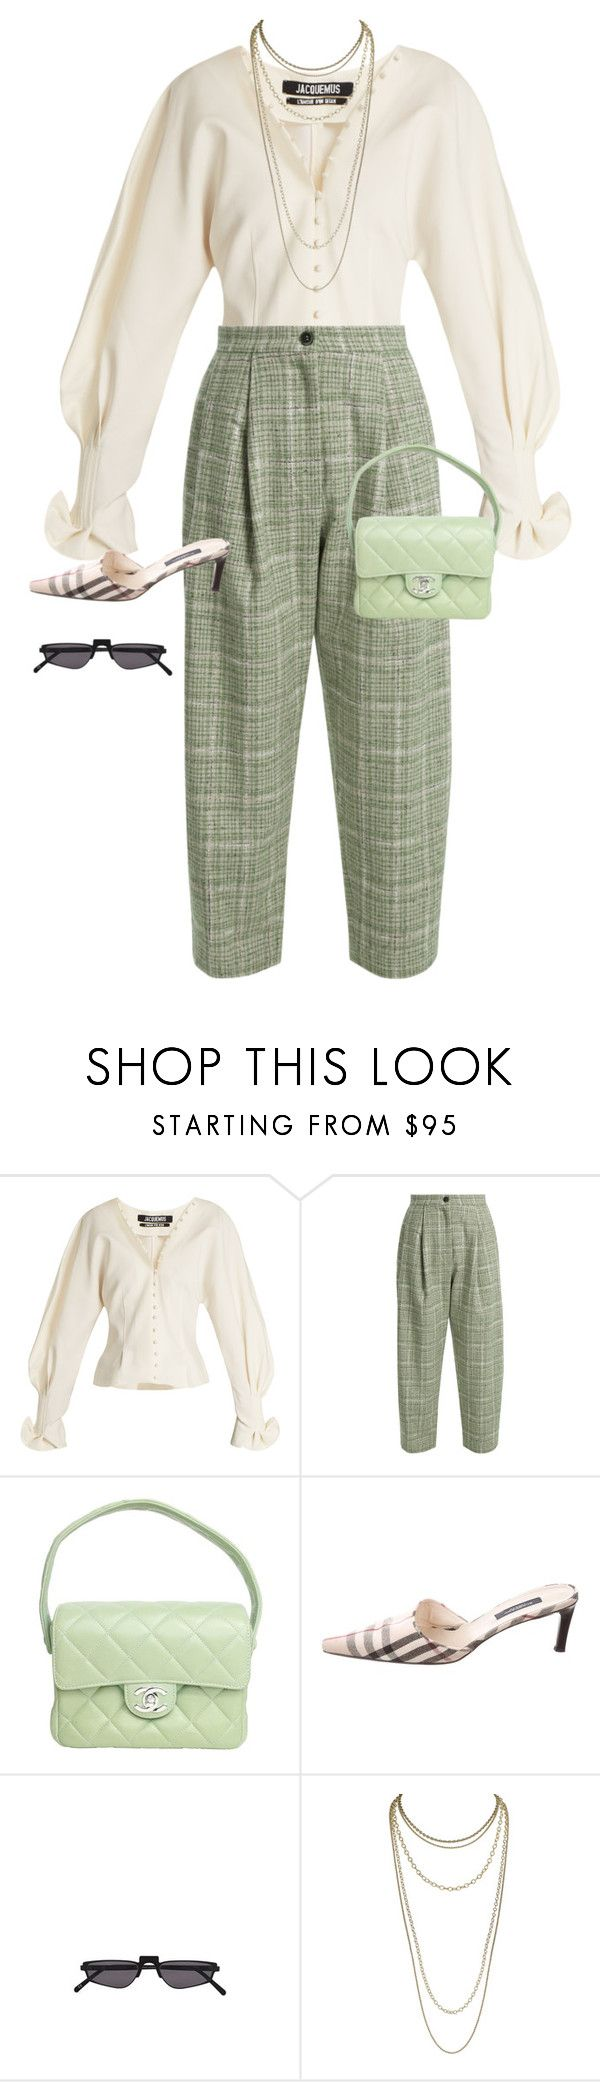 """""""geila higyno"""" by clue ❤ liked on Polyvore featuring Jacquemus, Natasha Zinko, Chanel, Burberry, Andy Wolf and Scott Kay"""